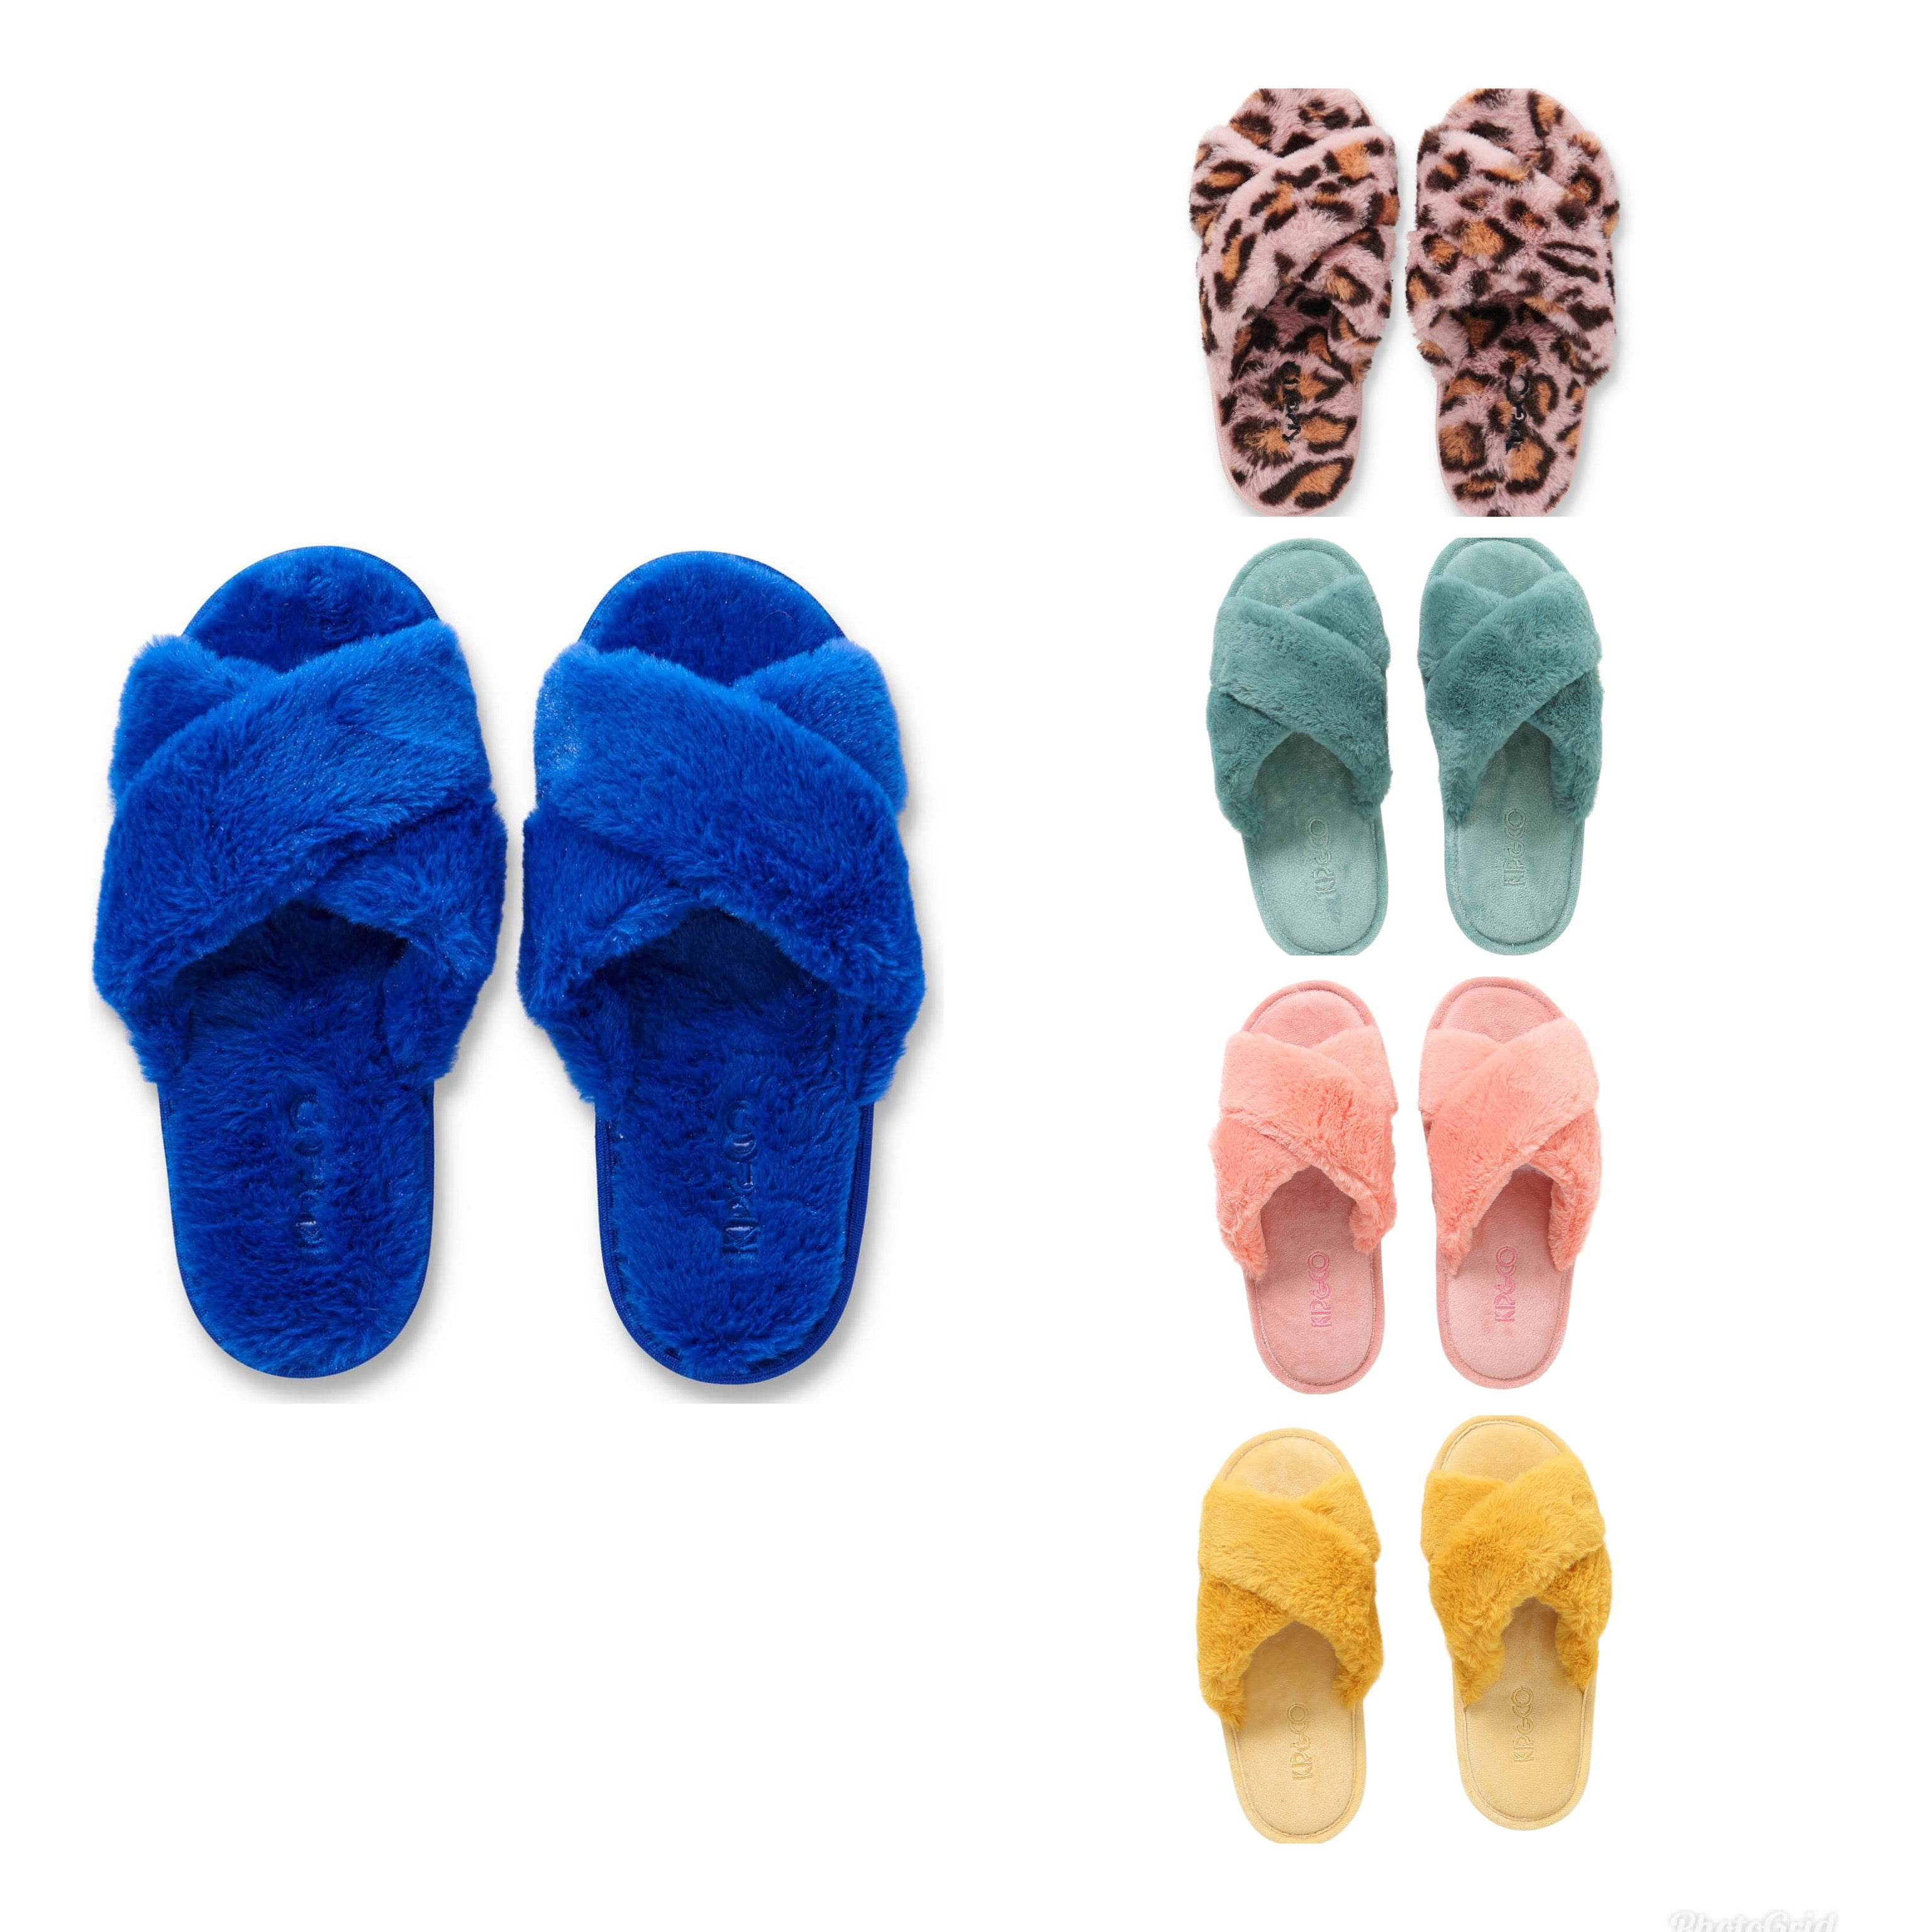 Slippers - Dazzling Blue